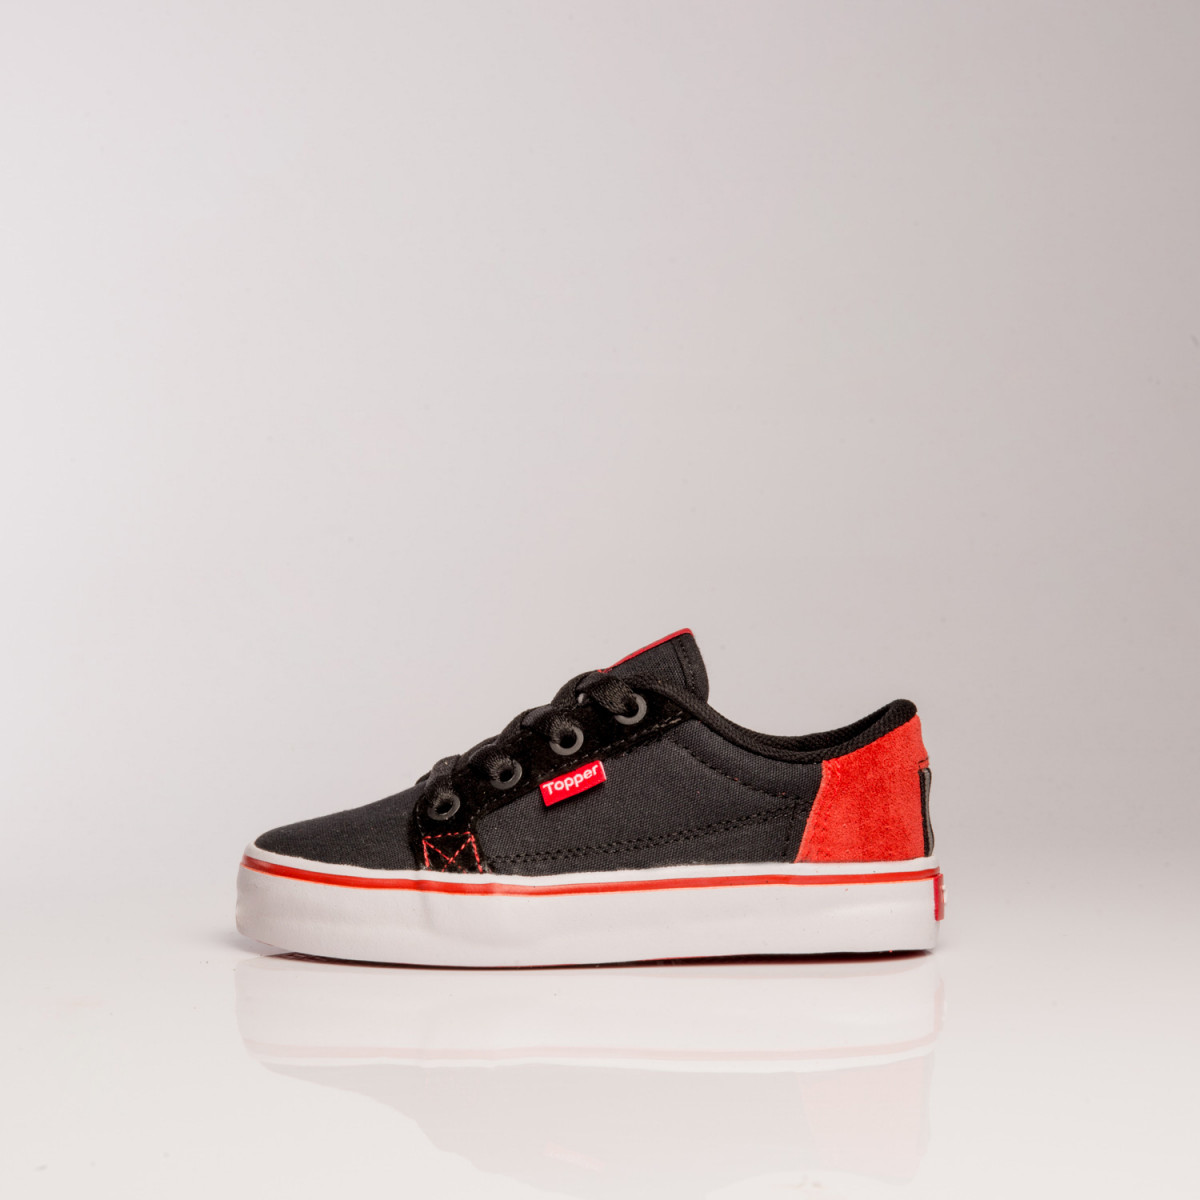 ZAPATILLAS TOPPER TONY KIDS